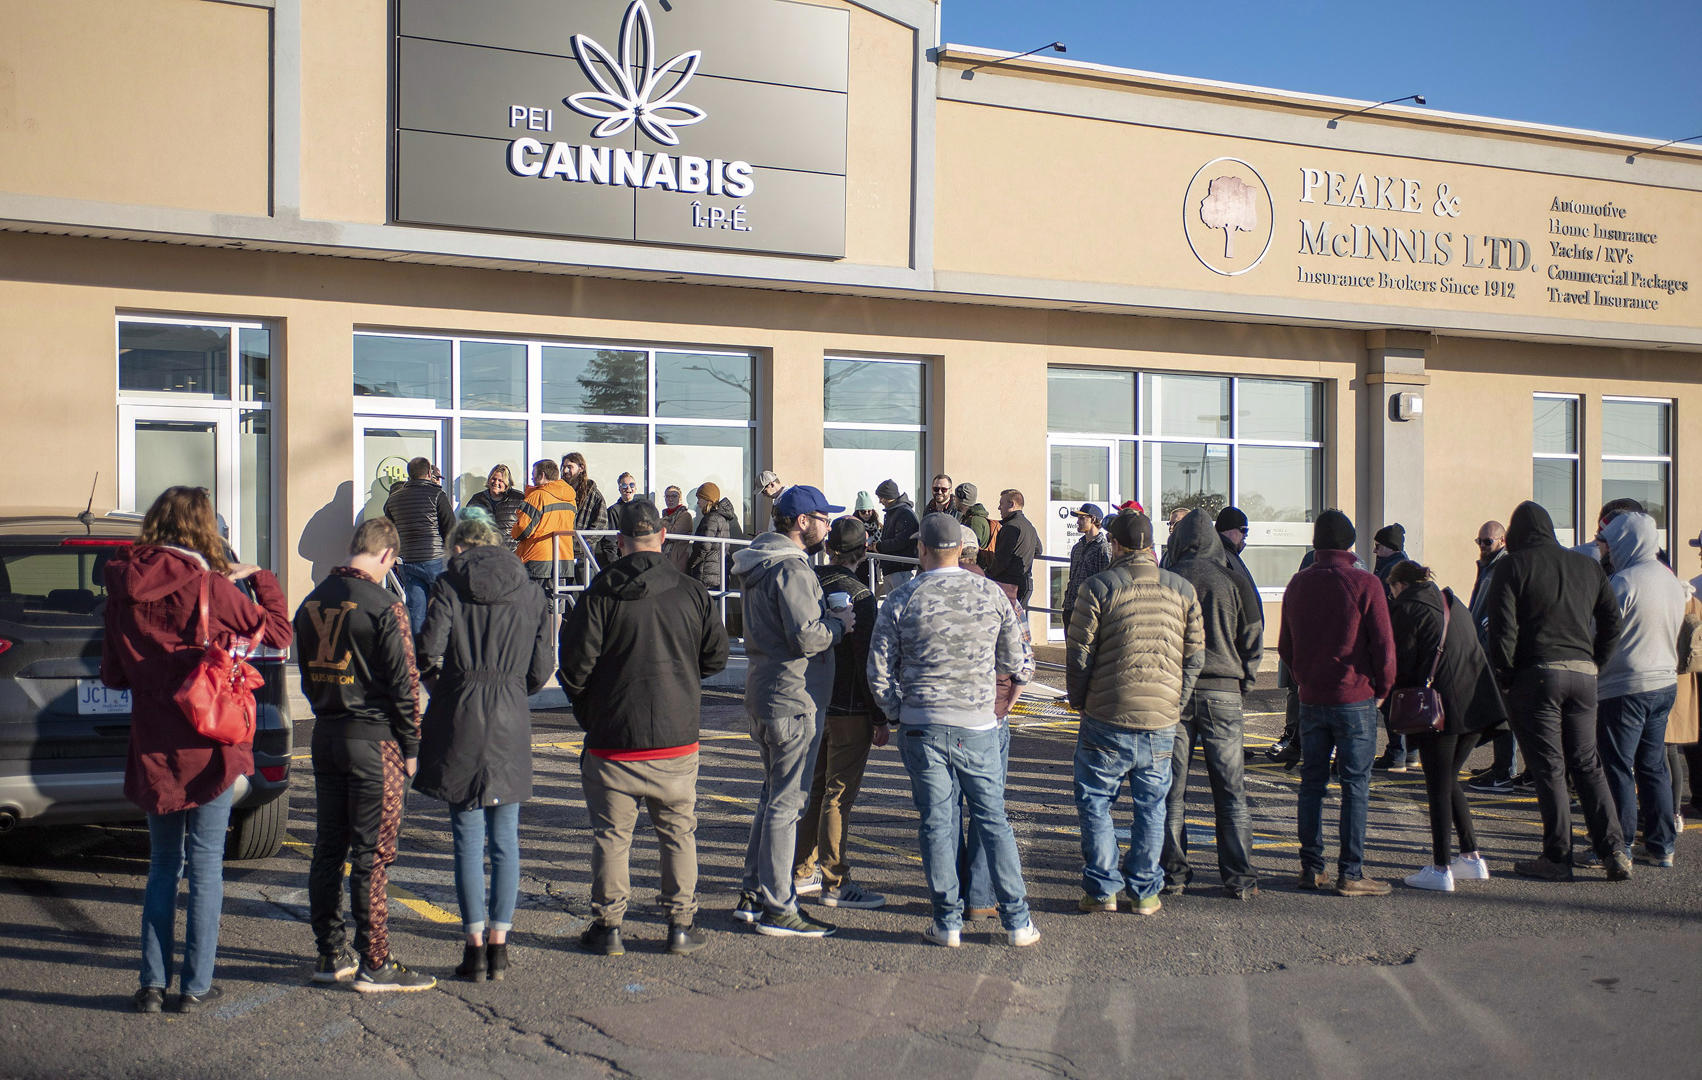 Slide 4 of 31: Customers line up at the retail cannabis store in Charlottetown, P.E.I., Wednesday October 17, 2018.